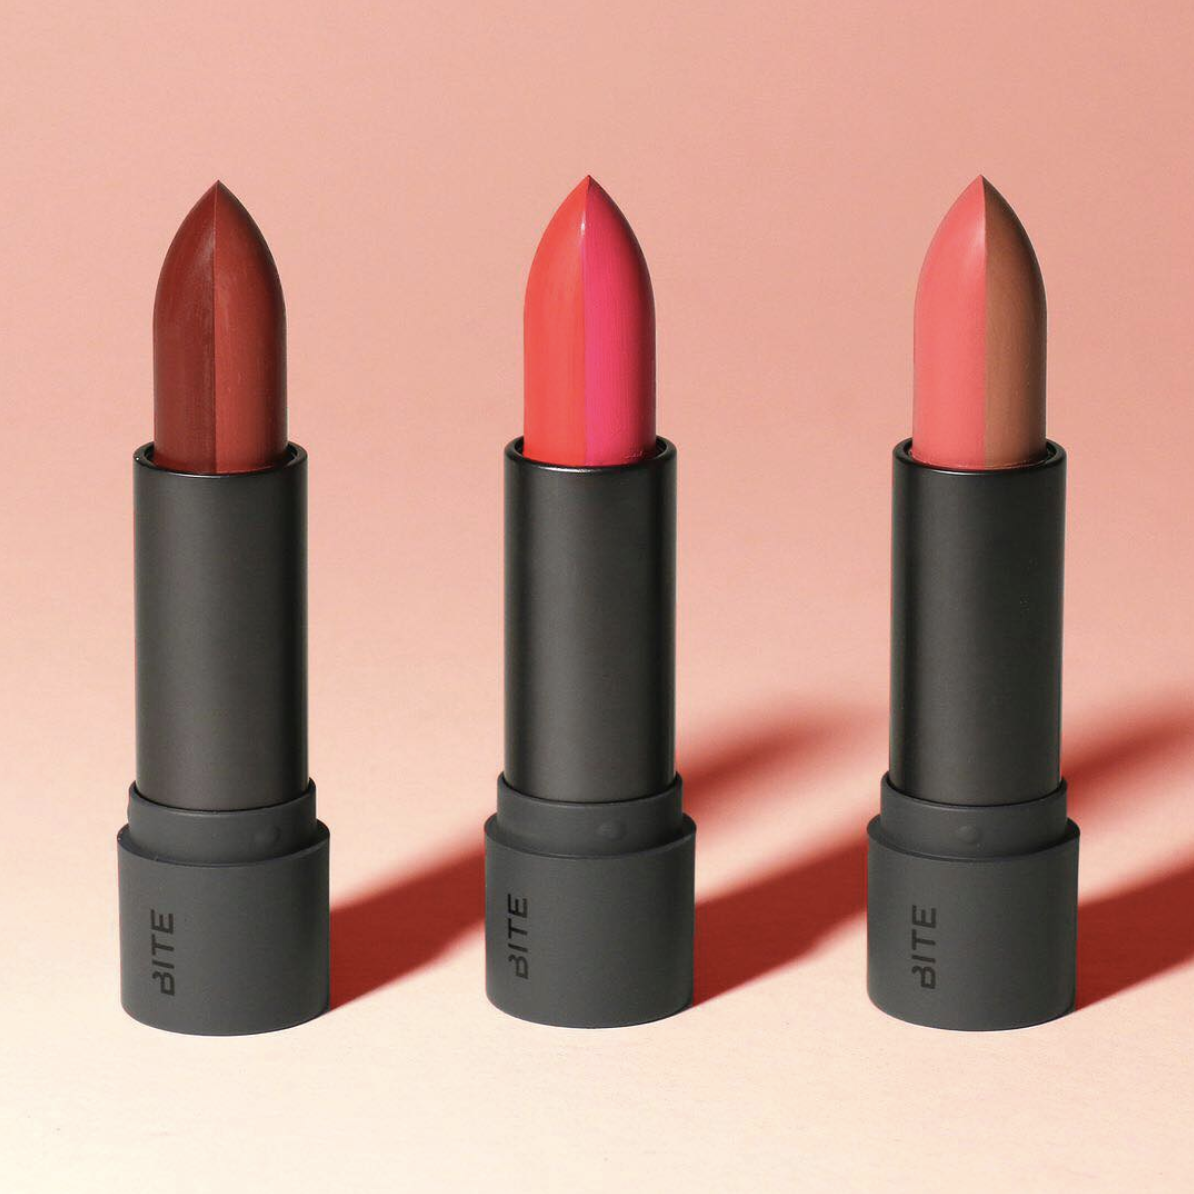 Bite Beauty released two-toned lipsticks, because they know we can't just pick one color to wear